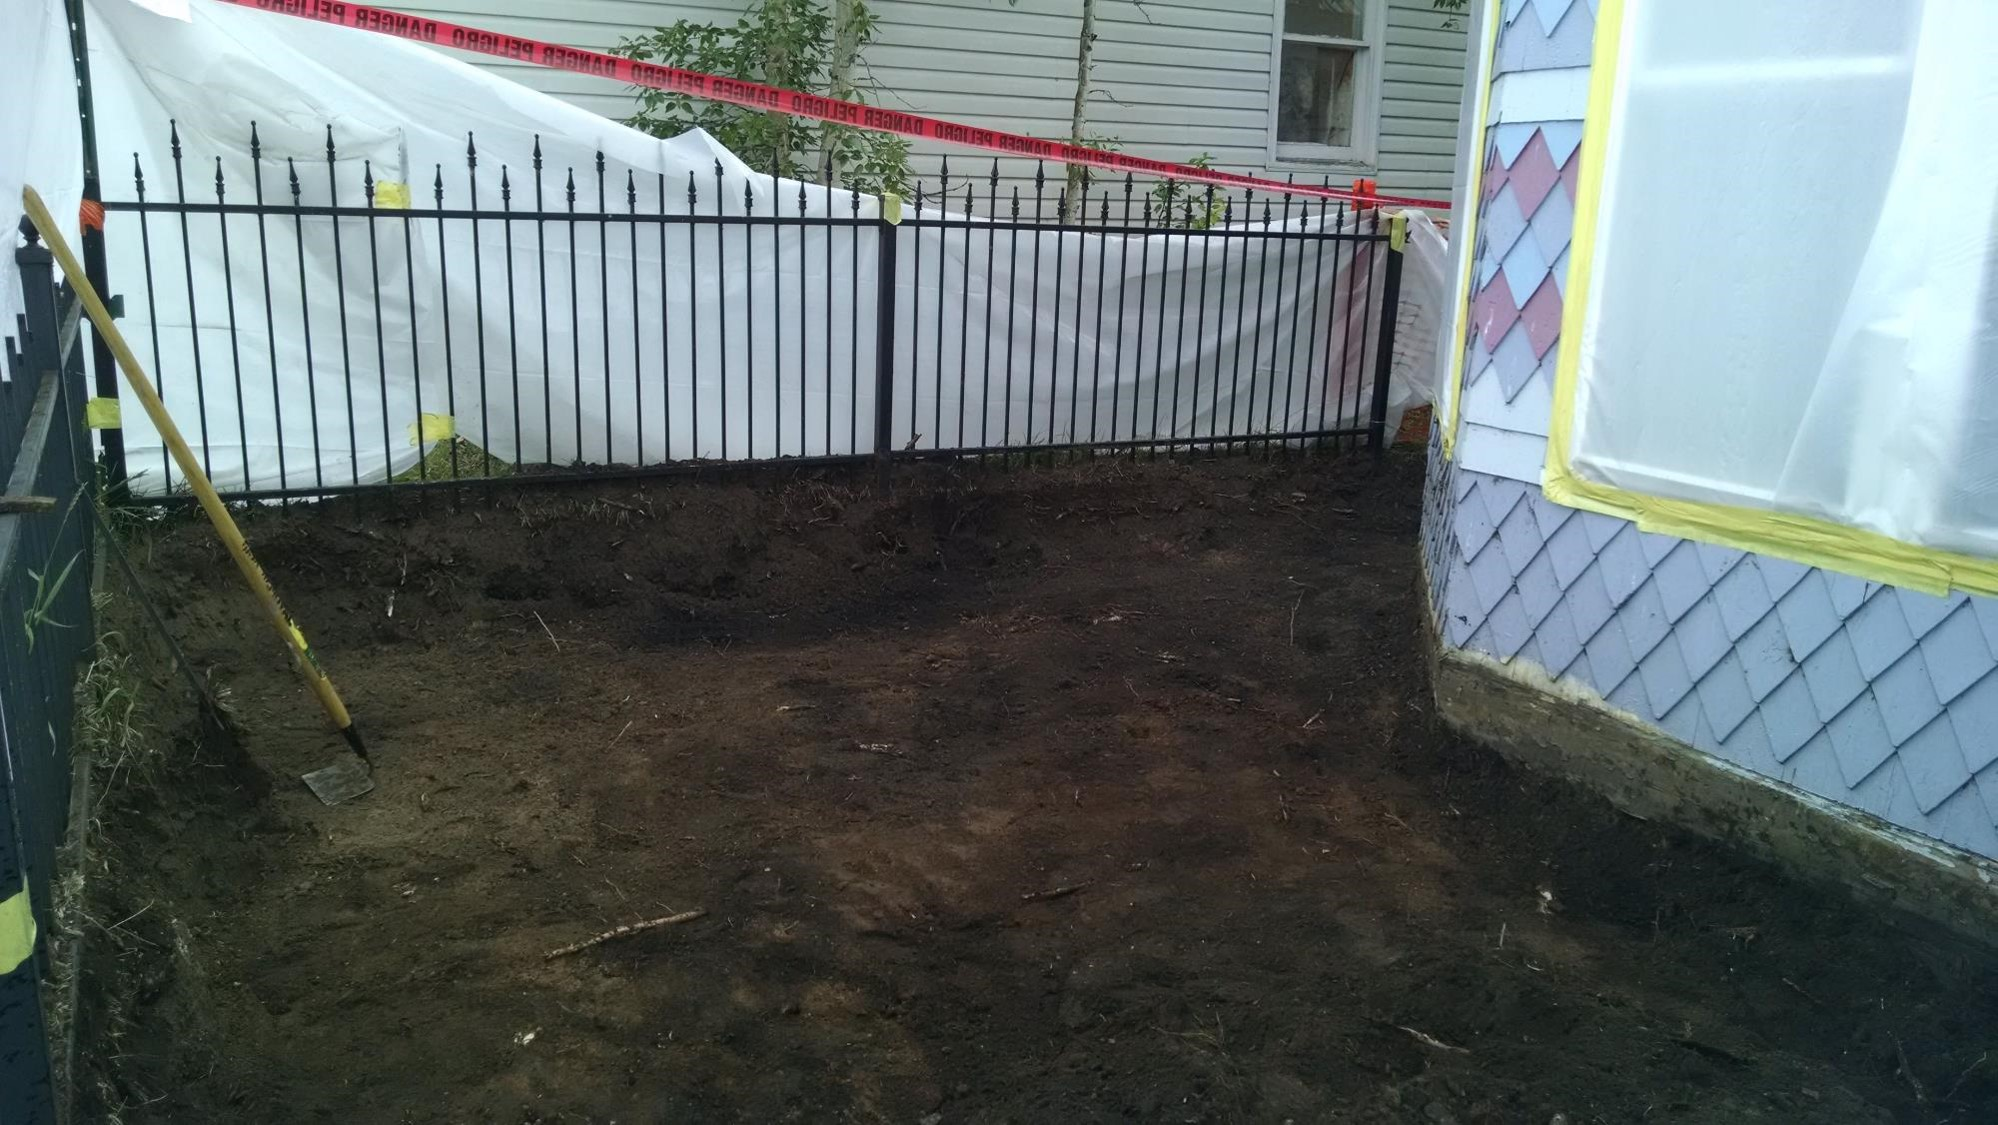 Removing contaminated soil